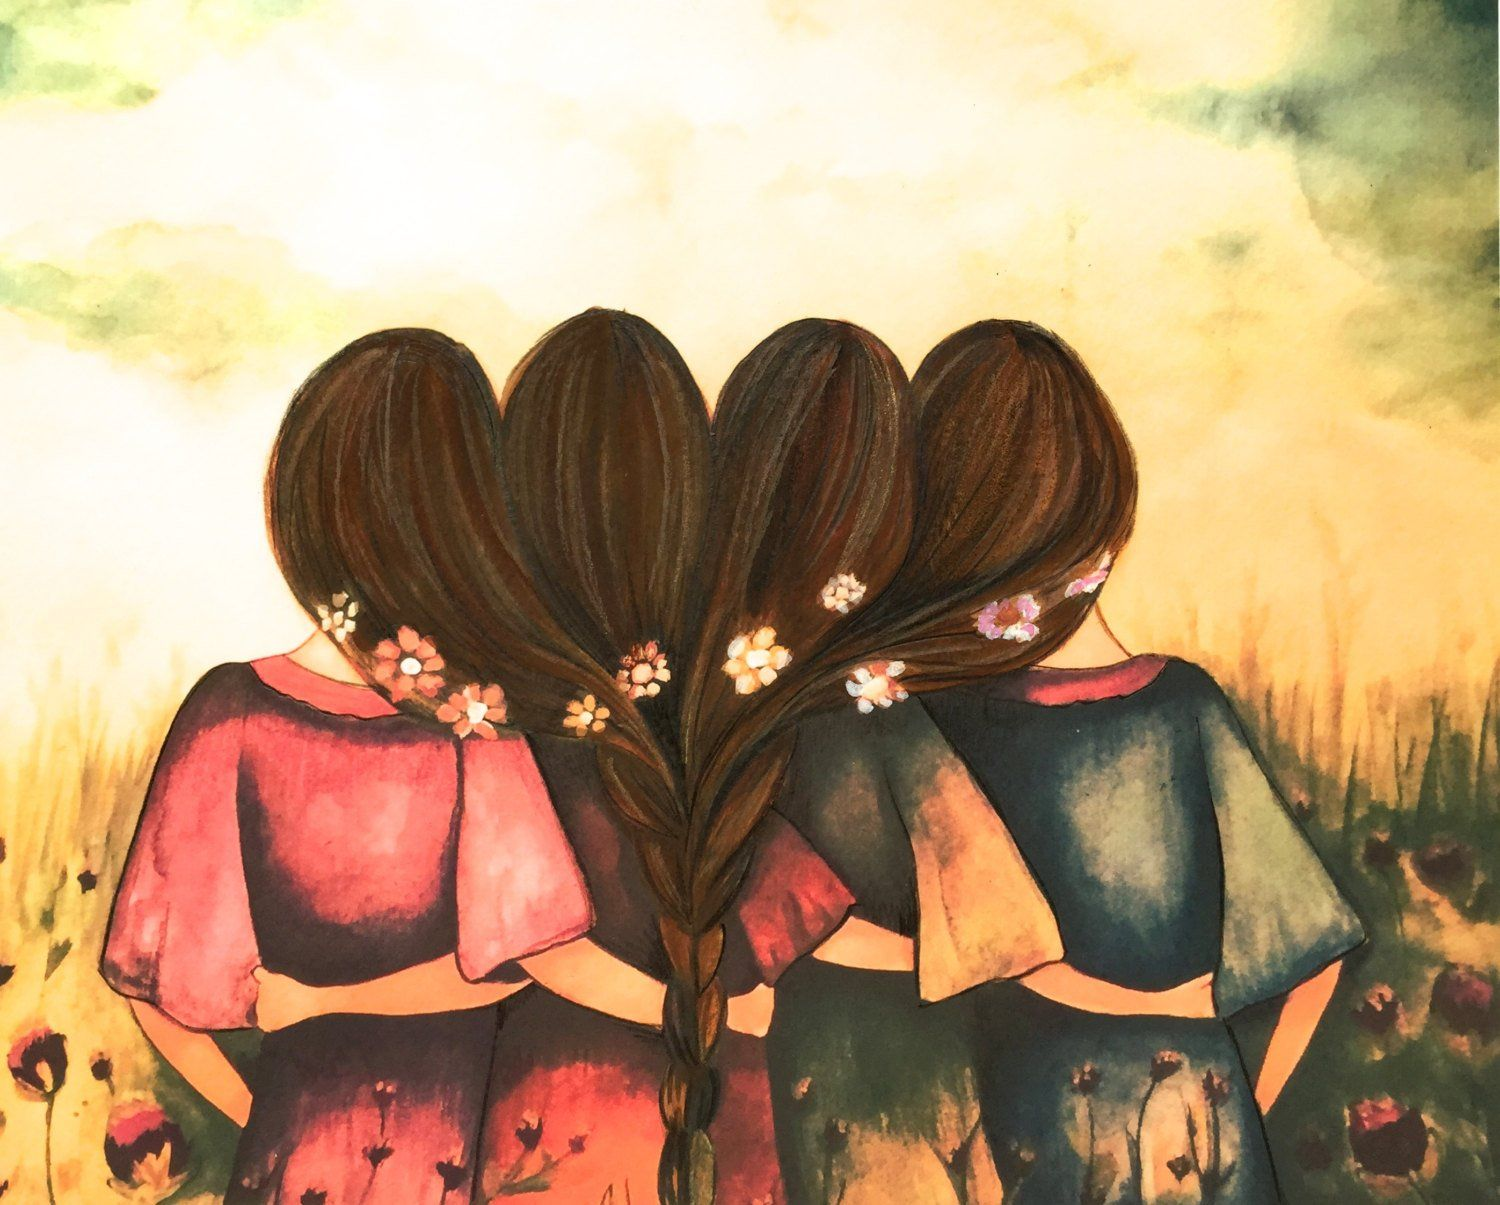 Pin By Muqaddas Ch On Sapaan Girly M Best Friend Drawings Drawings Of Friends